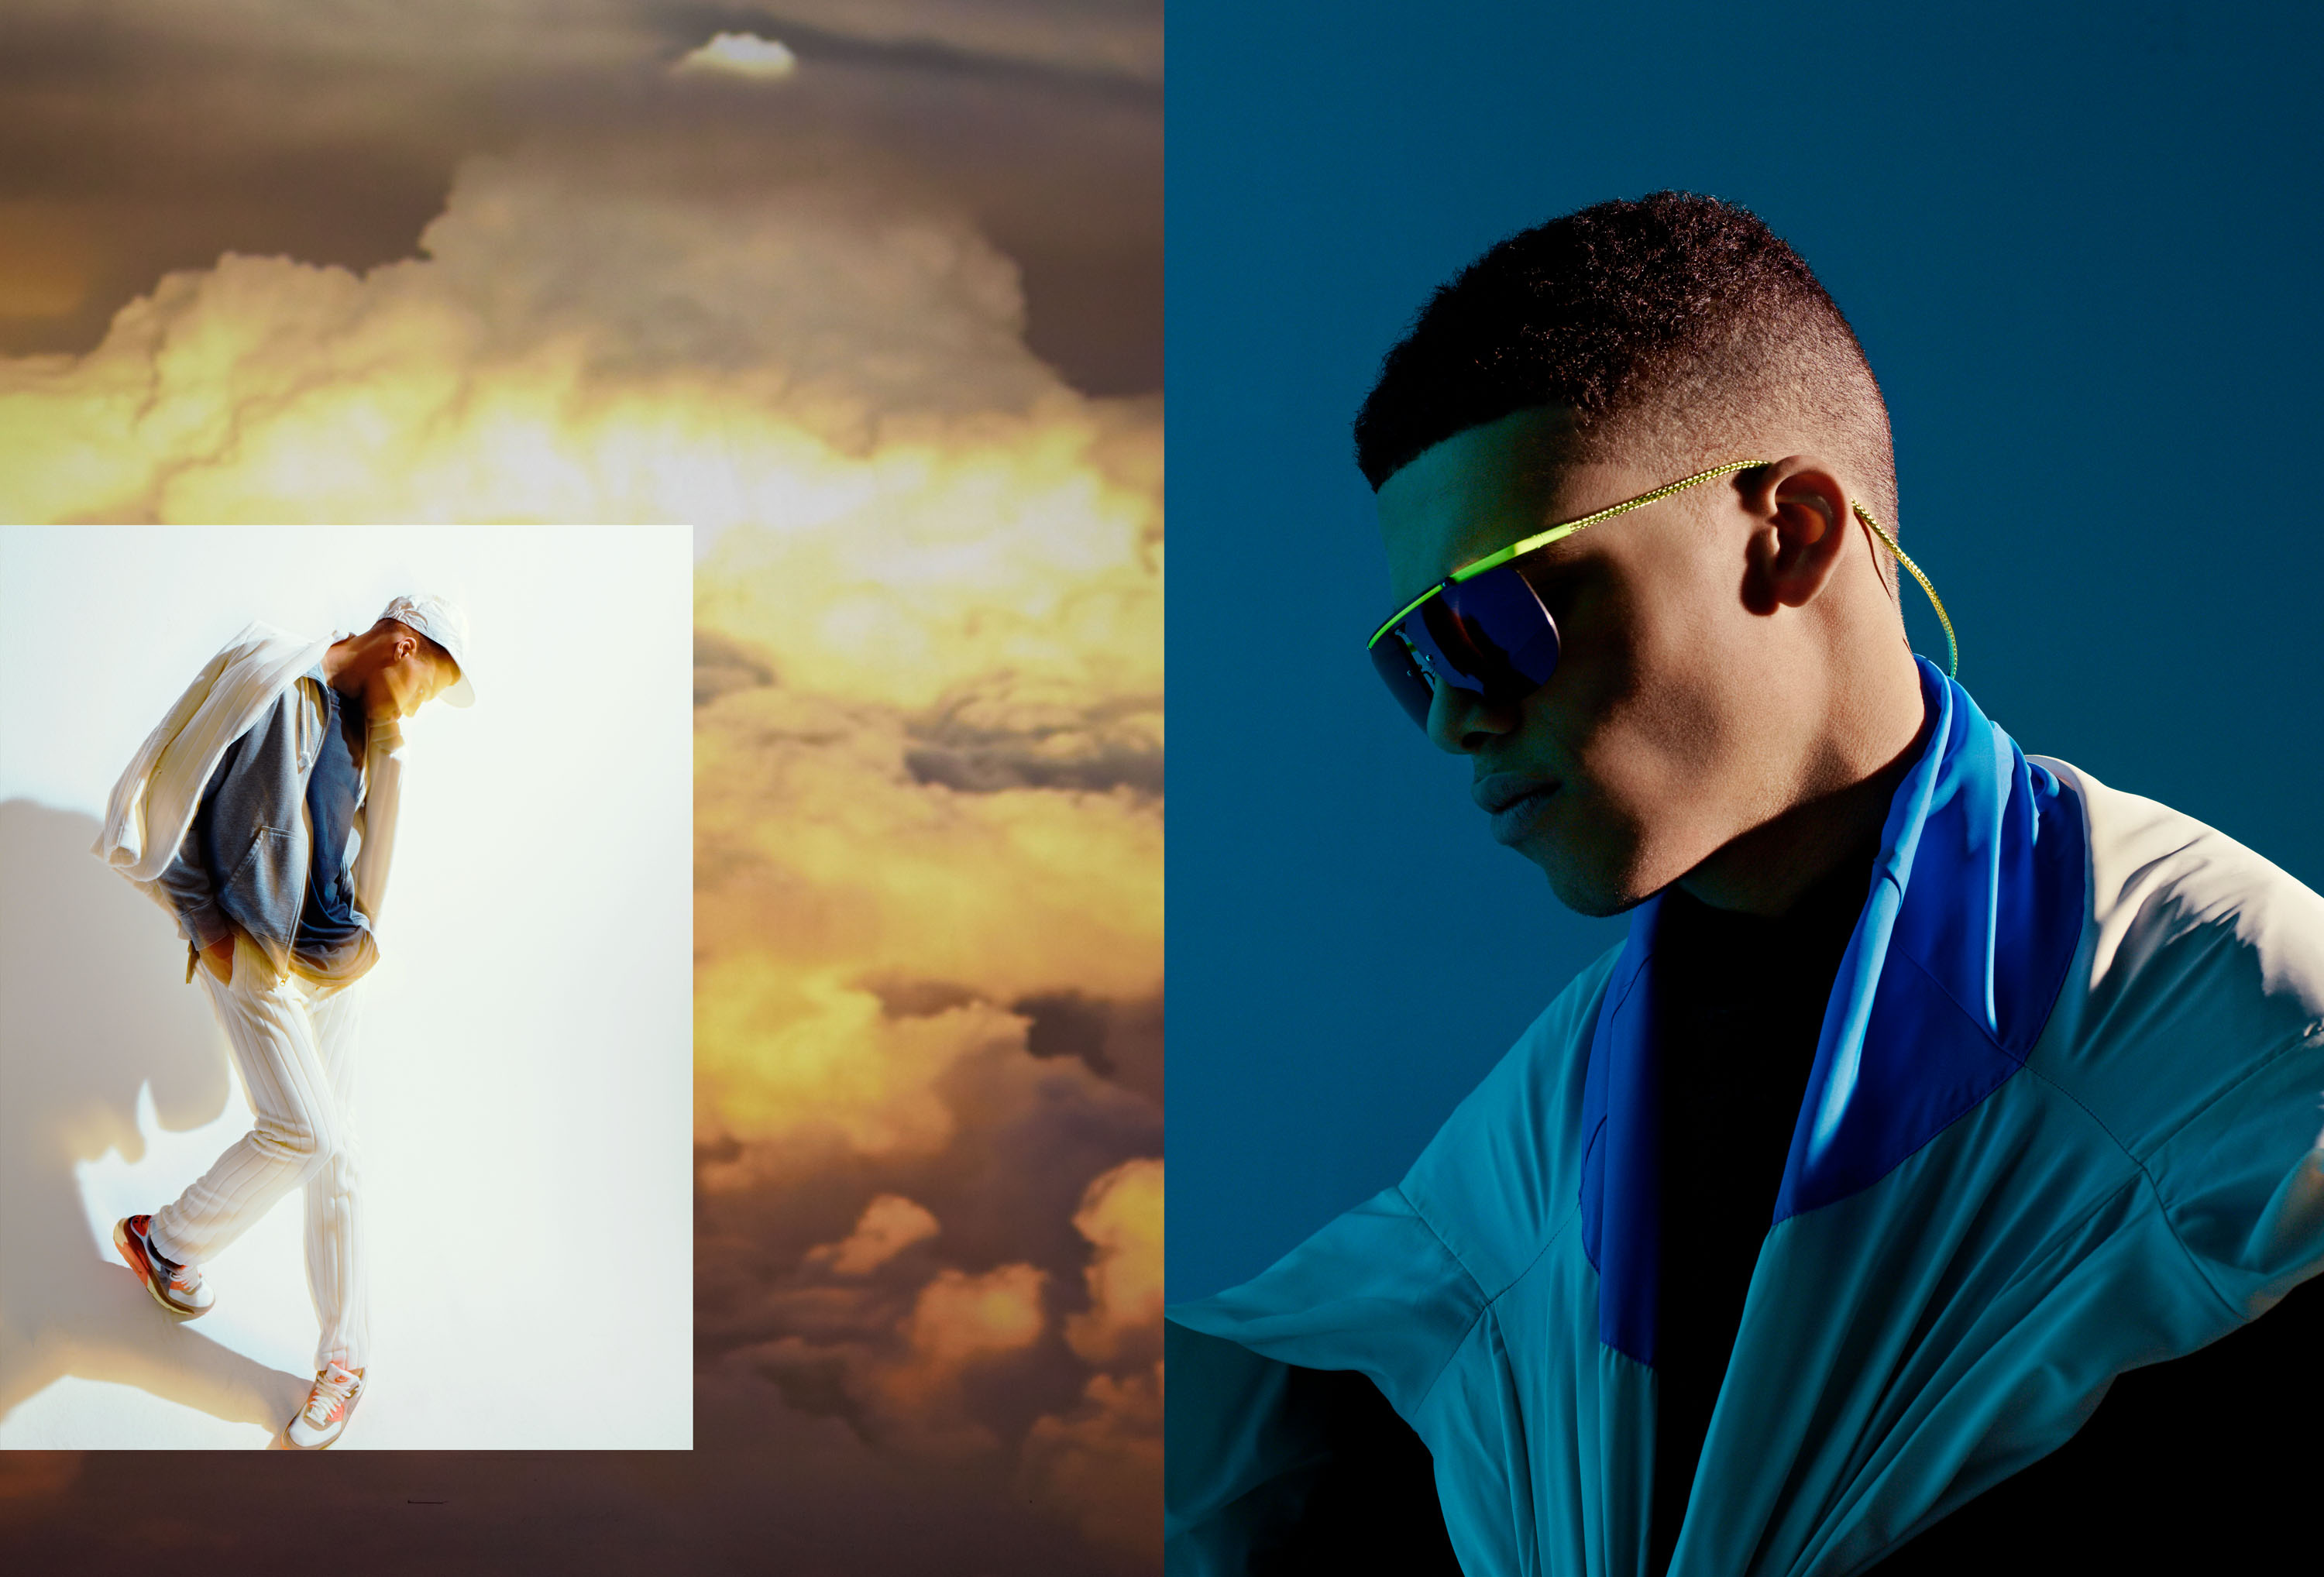 QVEST Magazine, Air Supreme, Detlef Schneider Photography, Jerome Boateng, Nike, Nike Air Max